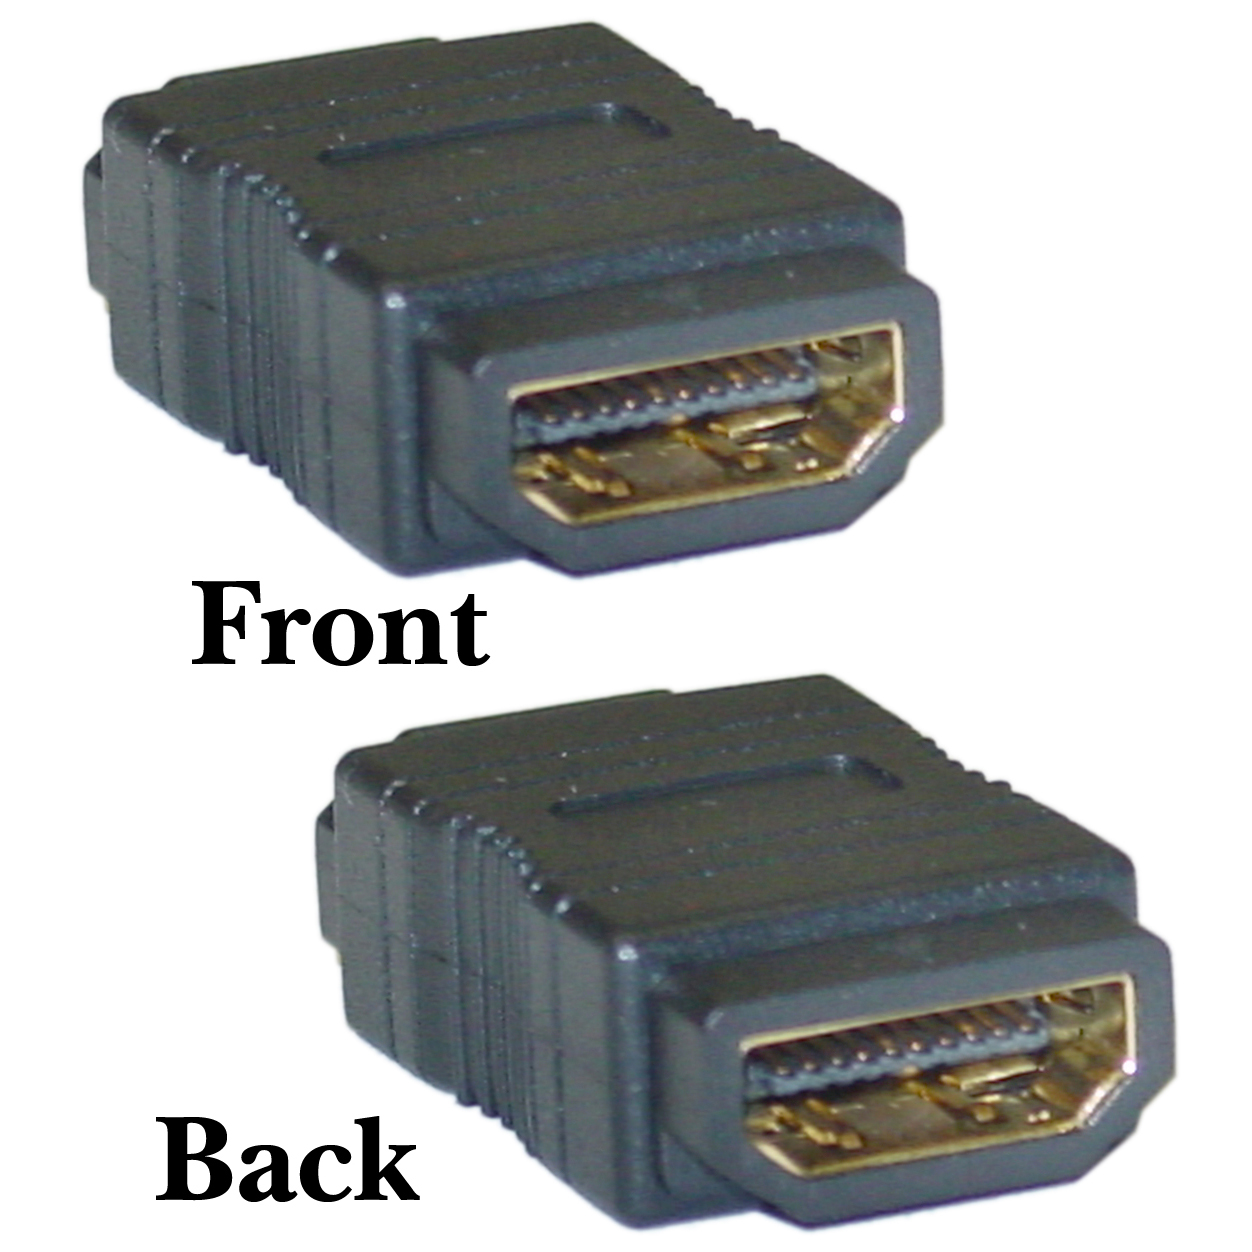 H180-1: HDMI to HDMI straight coupler, F/F